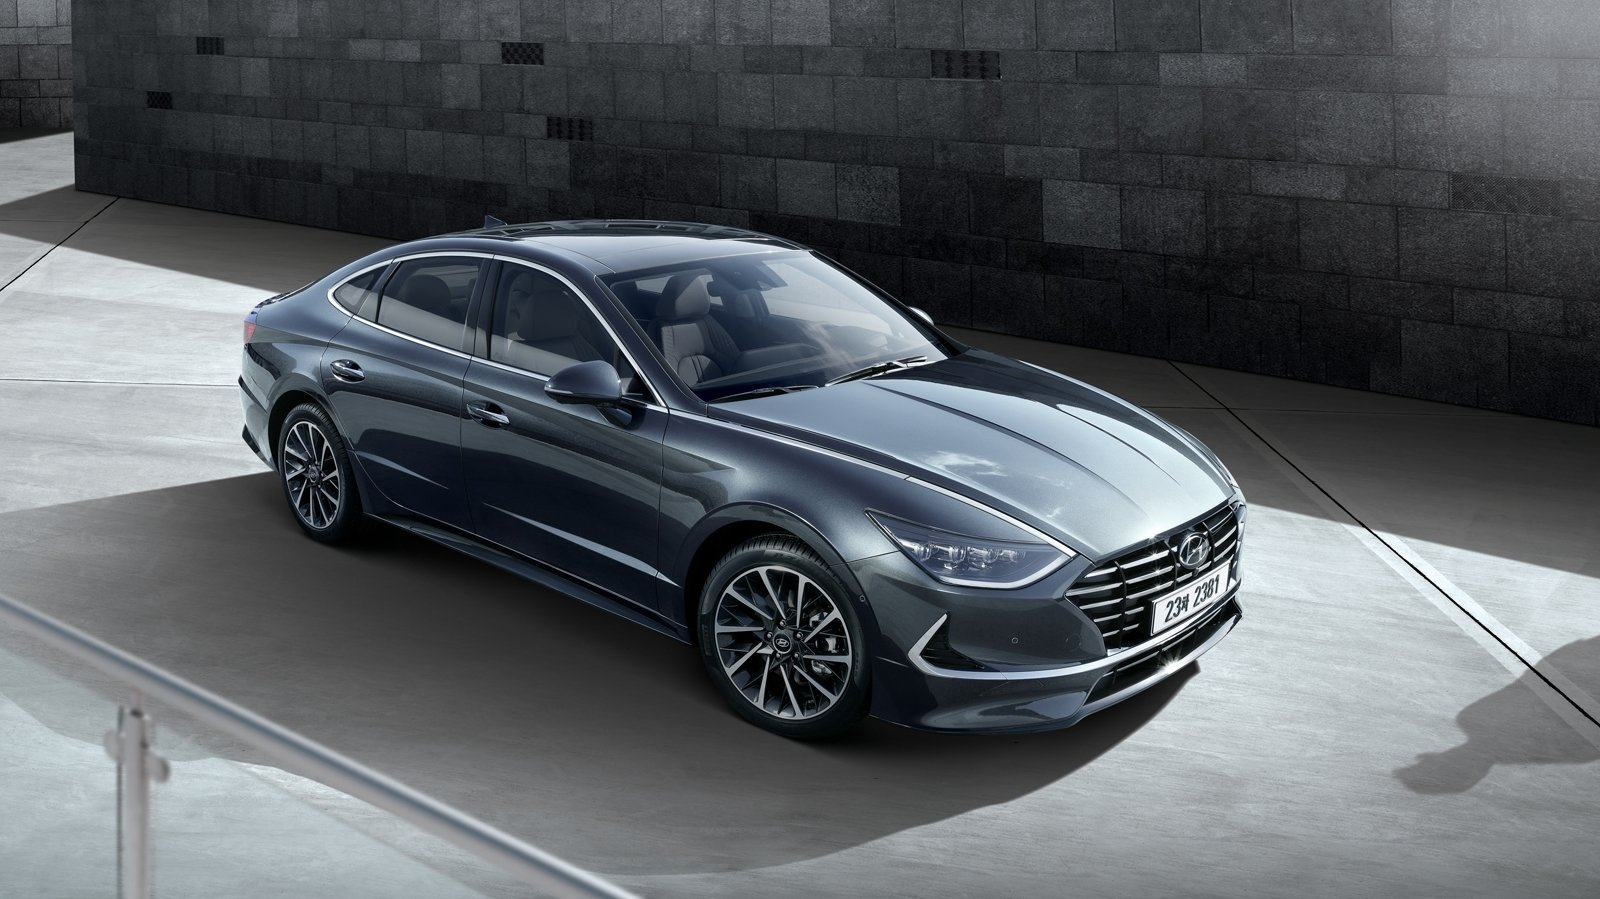 The All New 2020 Hyundai Sonata Has A Striking Face And